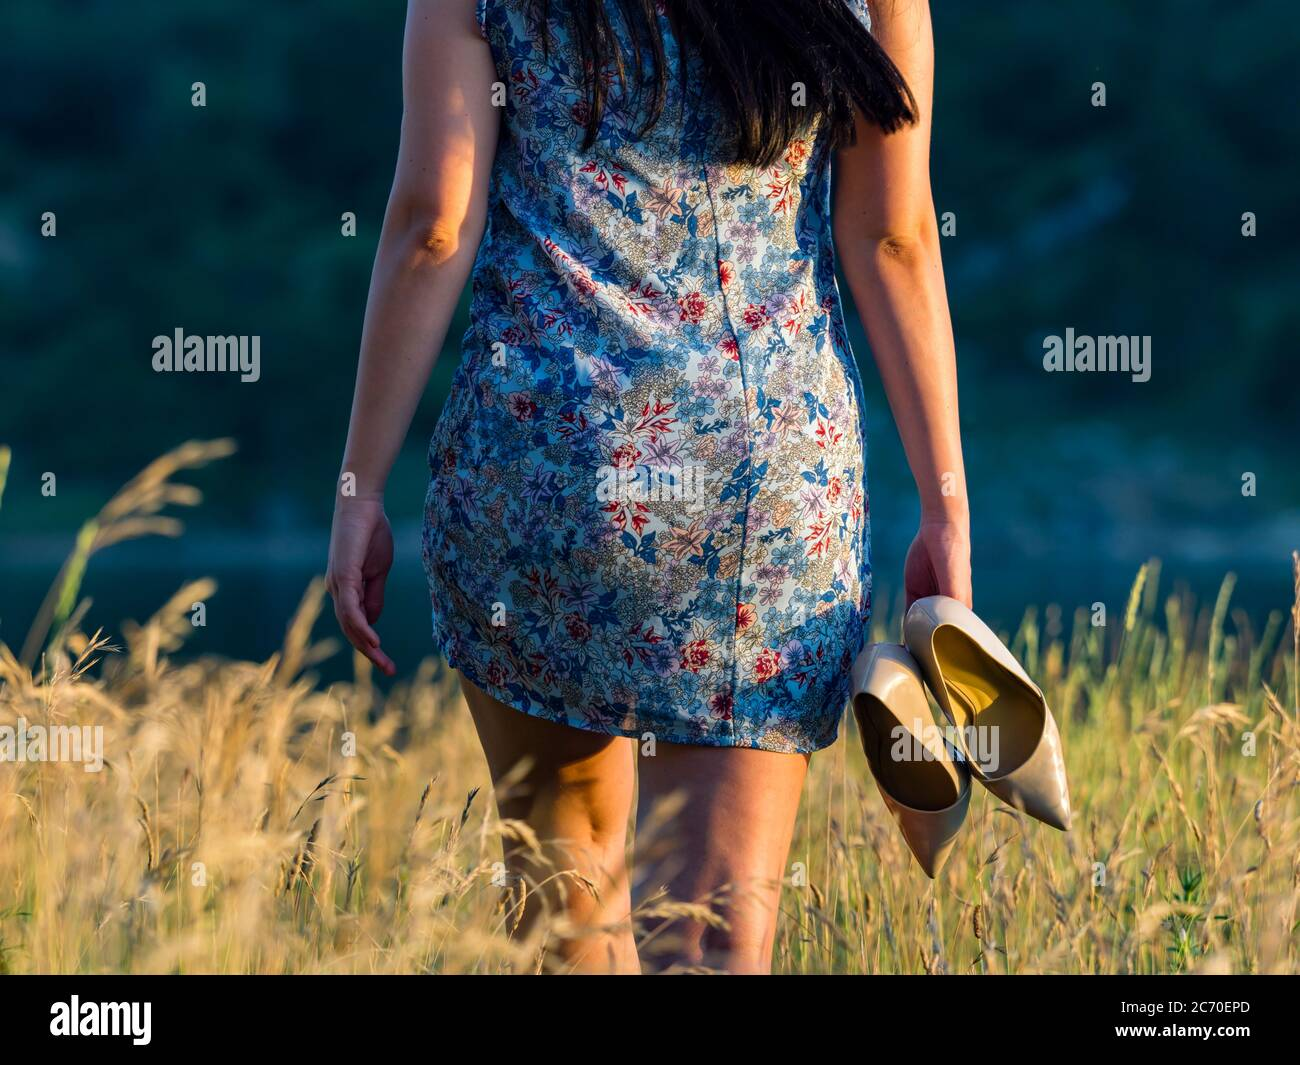 Aka young woman with high heels in hand walking going away in nature getaway runaway crop cropped view isolated bum booty Stock Photo